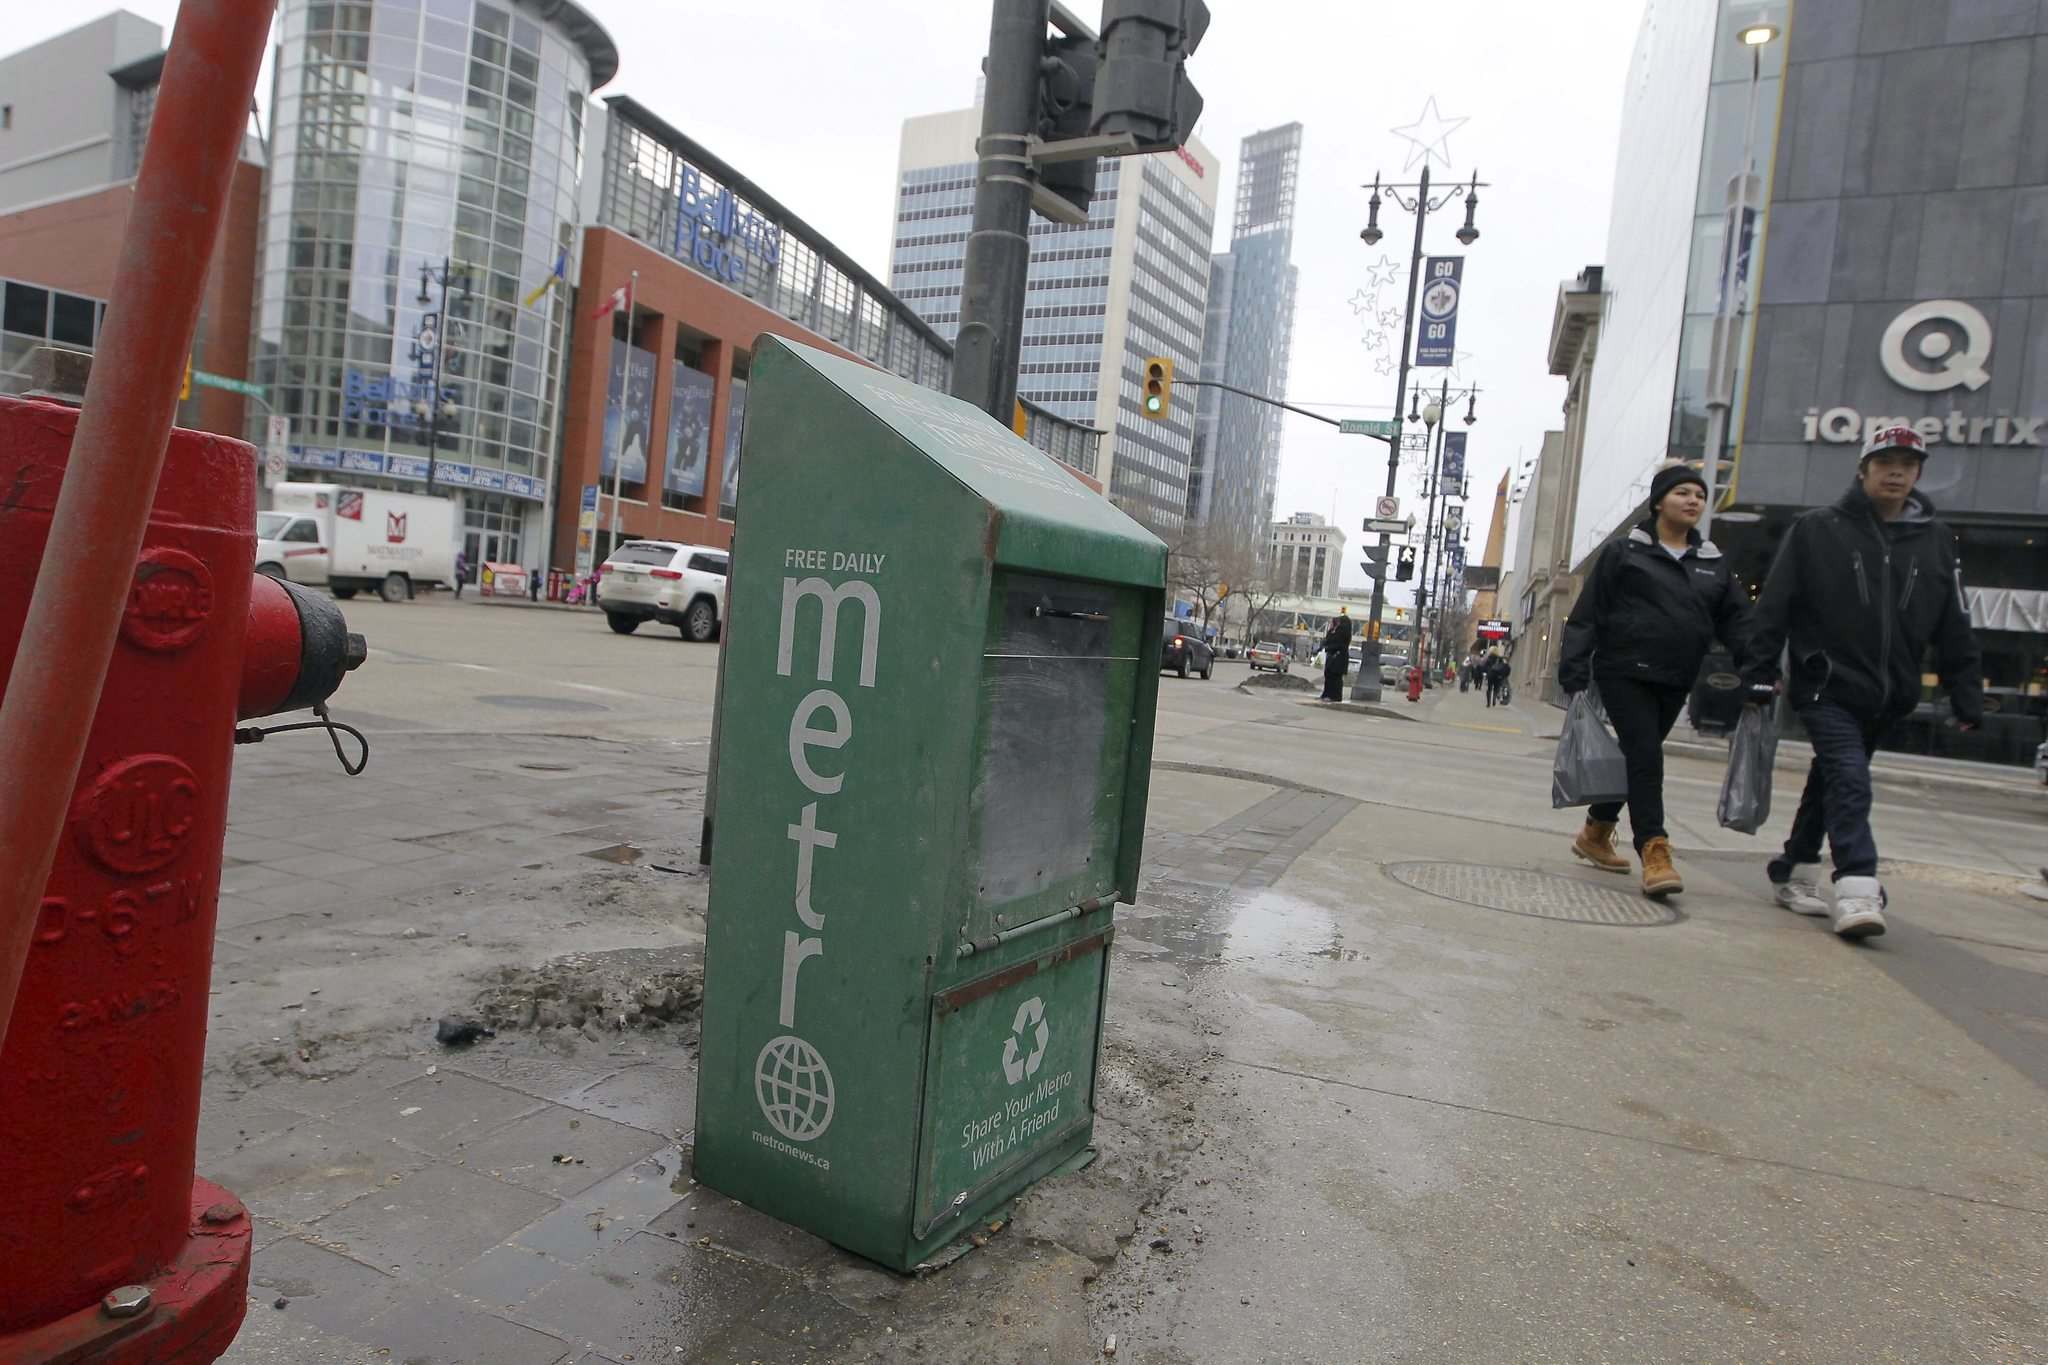 BORIS MINKEVICH / WINNIPEG FREE PRESS</p><p>Winnipeg's free daily Metro newspaper was among the casualties after the Torstar/Postmedia asset swap resulted in the closure of dozens of community and commuter papers.</p>